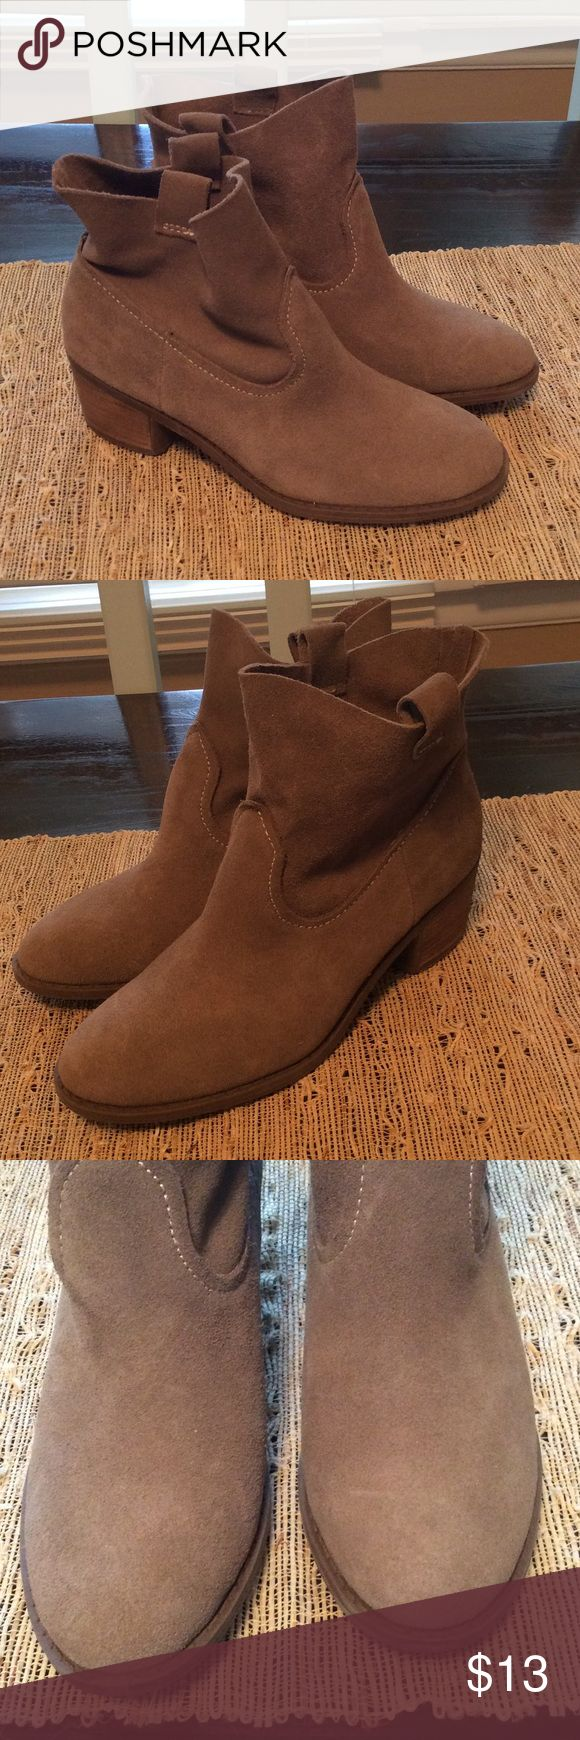 Brown Suede Ankle Boots - worn twice! I bought these at Marshall's (brand is Carlos by Carlos Santana) for $32. I tried them on with thin socks, and they fit ok, still a bit tight. I am a pretty true size 9. These were listed as a 9, but I really think these are more of a 8 or 8.5. I decided that they were just a bit too tight after wearing them twice. There are no discolorations in person and are very clean! I would definitely keep them if they fit, but since I am moving, they gotta go :)…